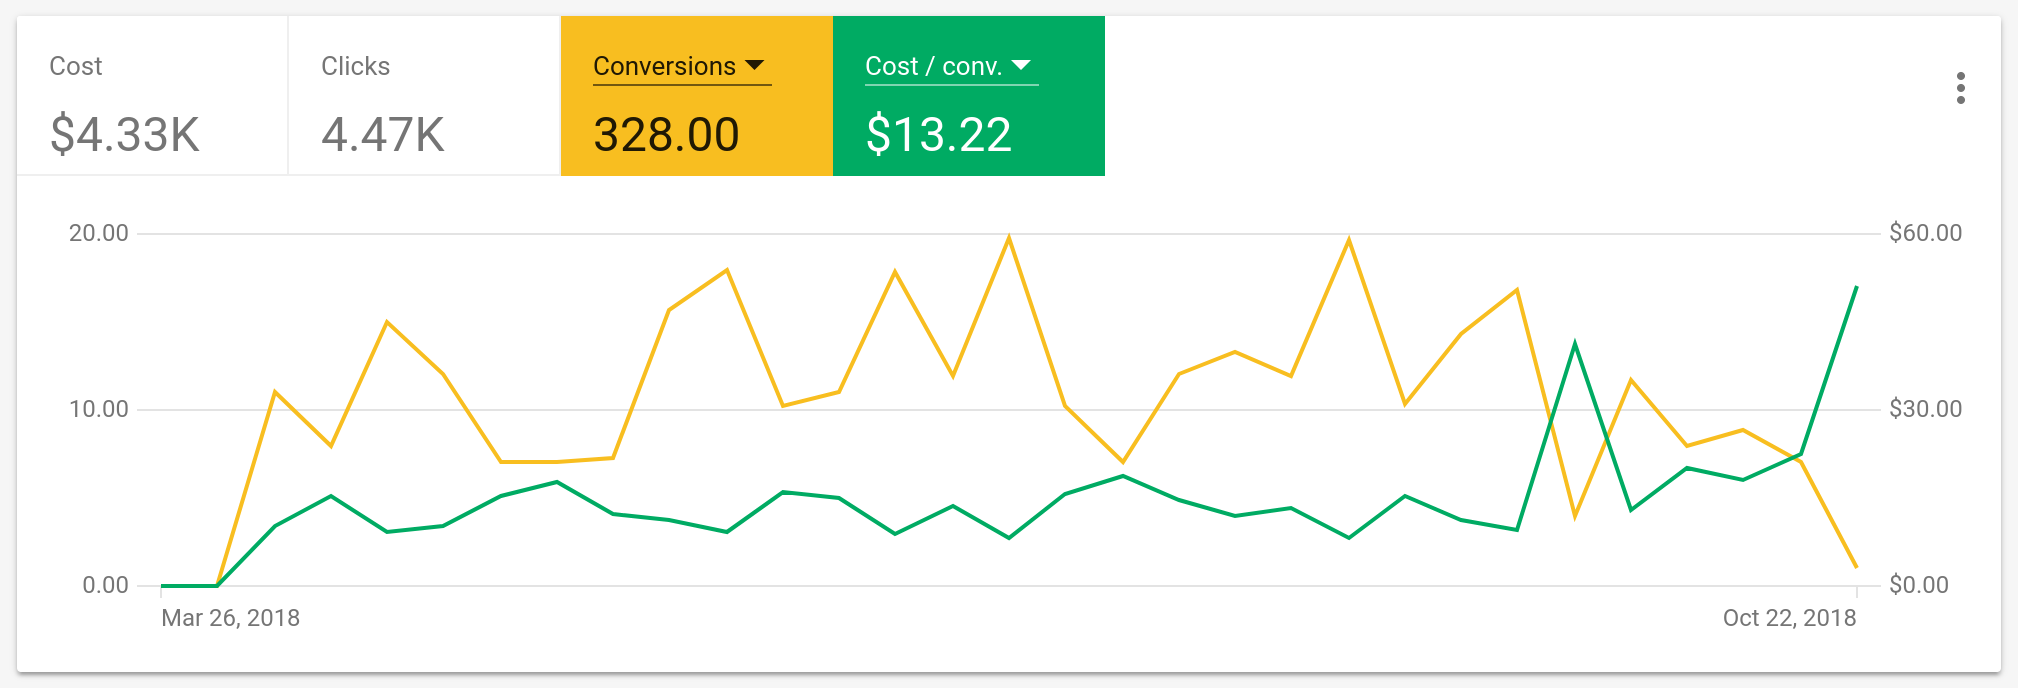 Results from a Google AdWords campaign for Wedding Advertising